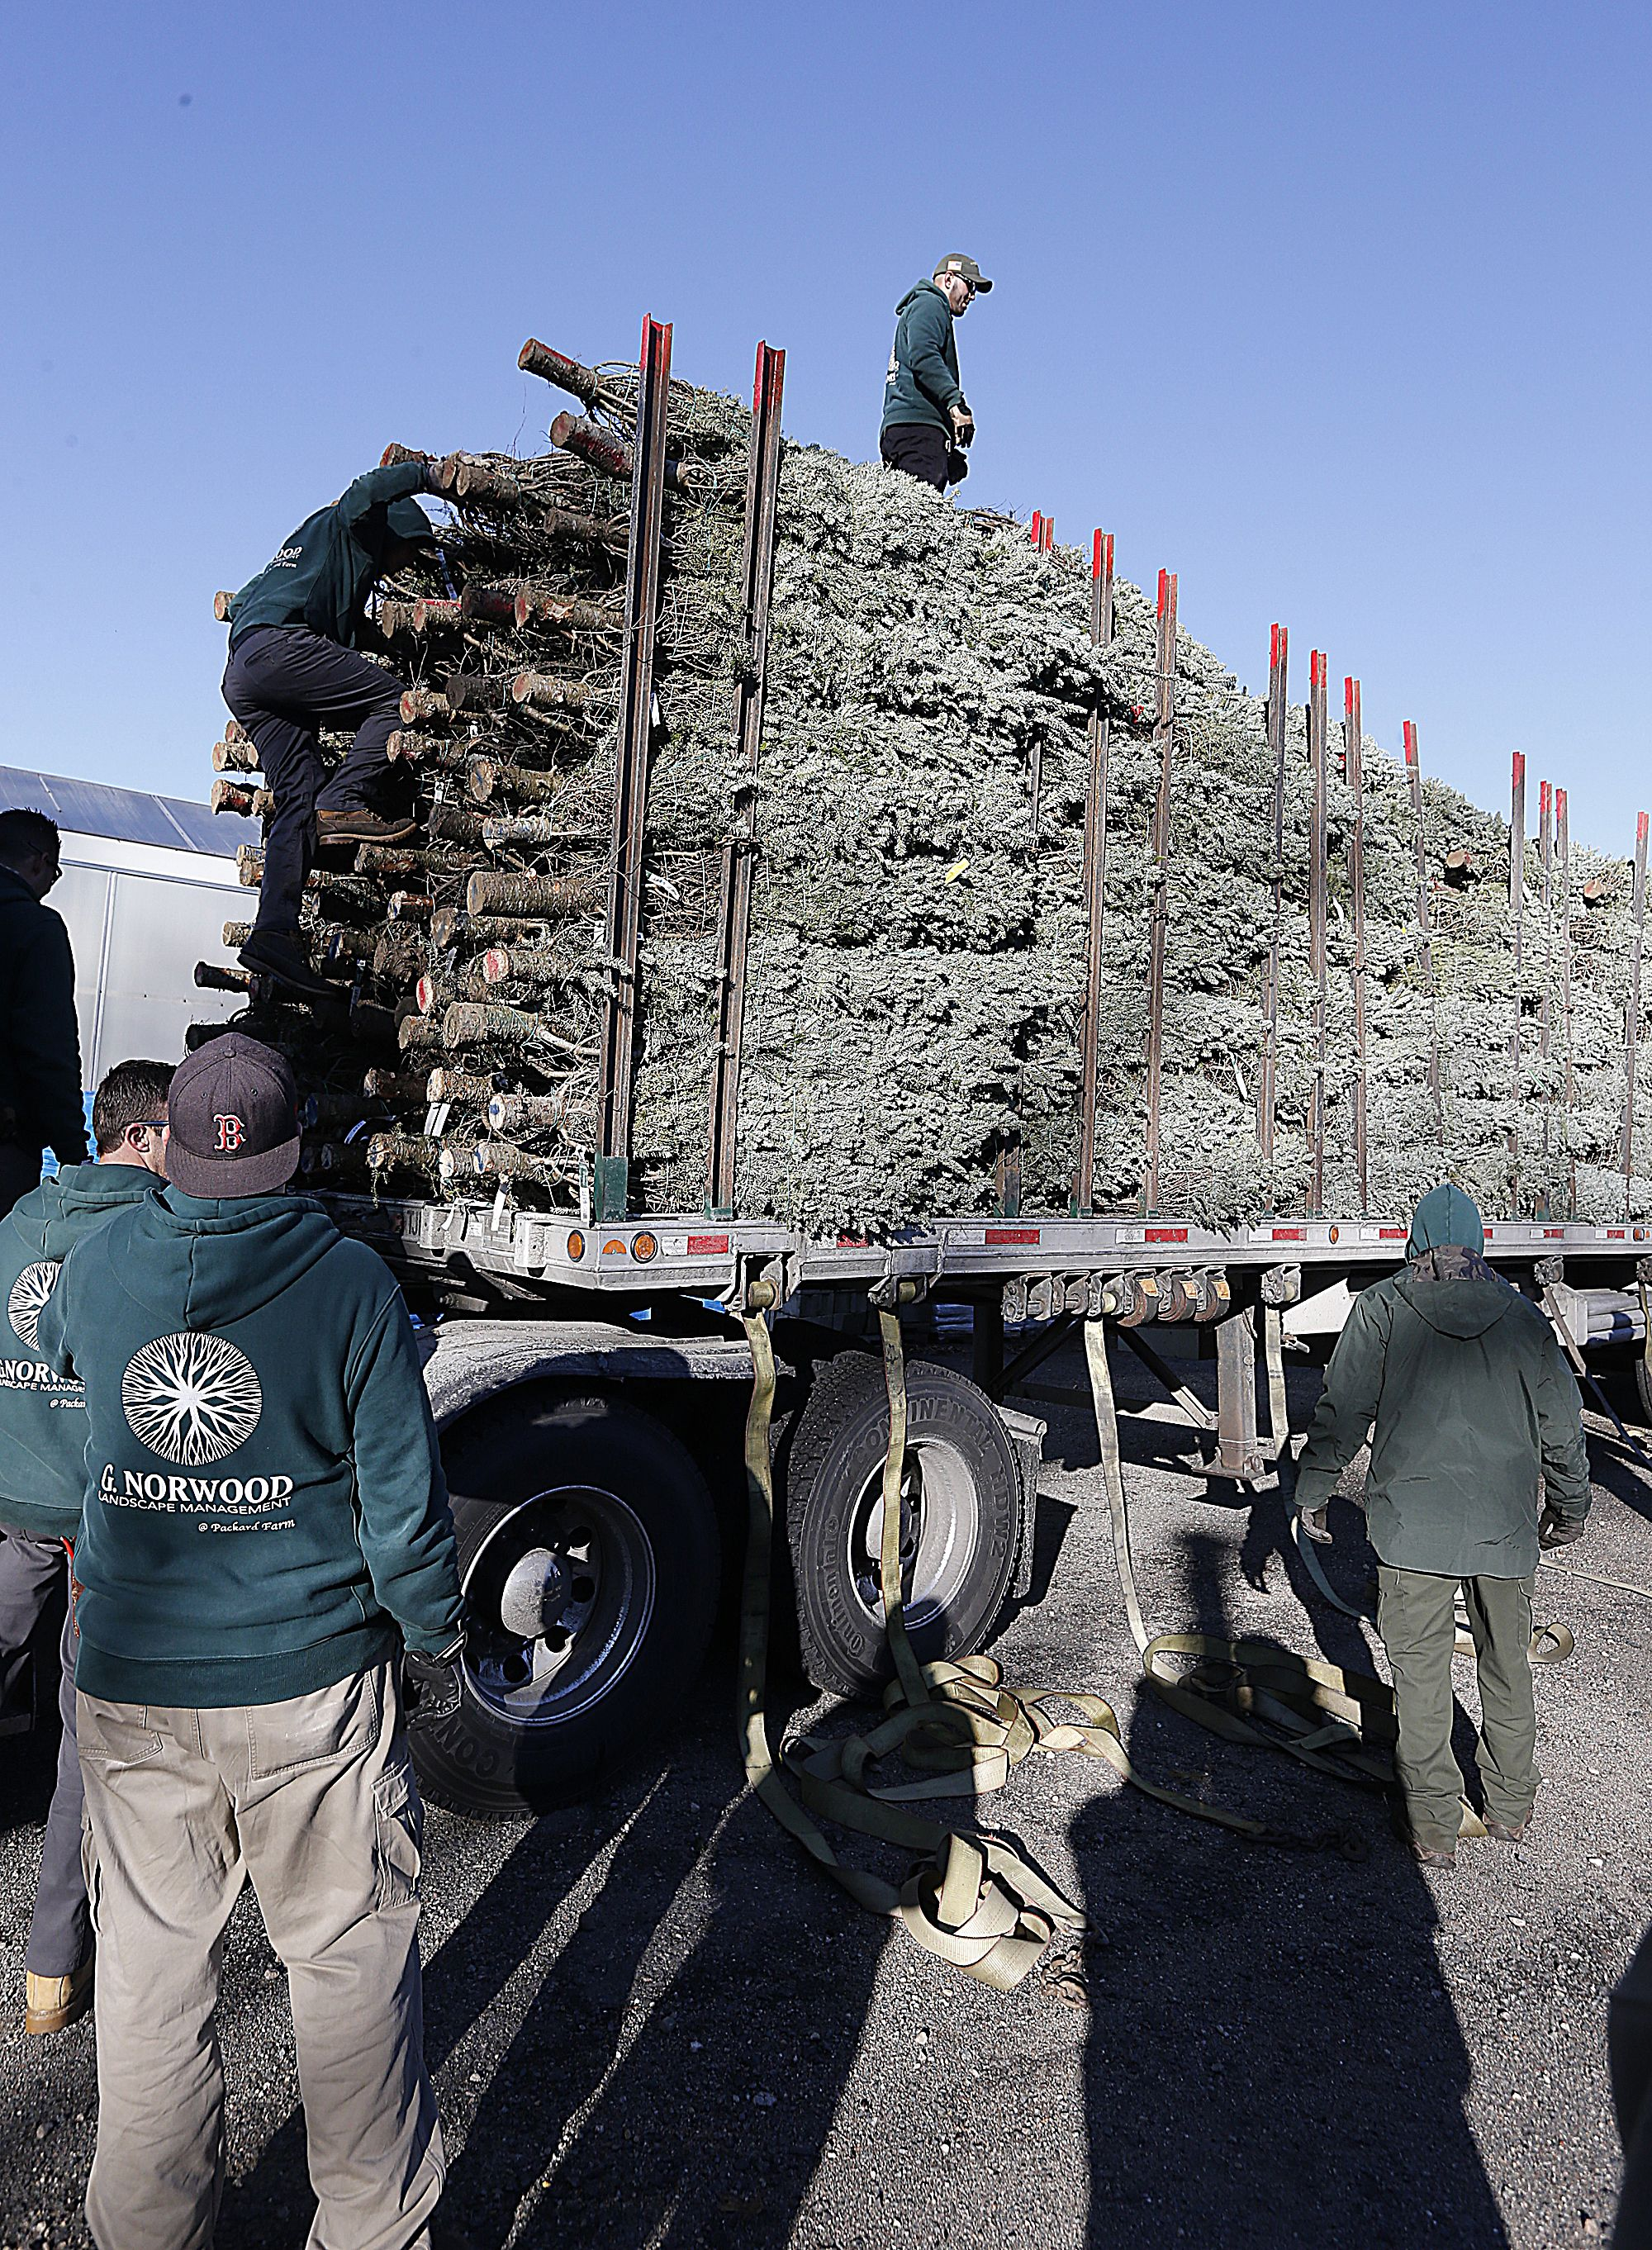 Employees At Packard Farm In Brockton Unload Christmas Trees They Bought From A Tree Farm In Coaticook Quebec Canada On Thursday Novem Tree Farms Canada Farm